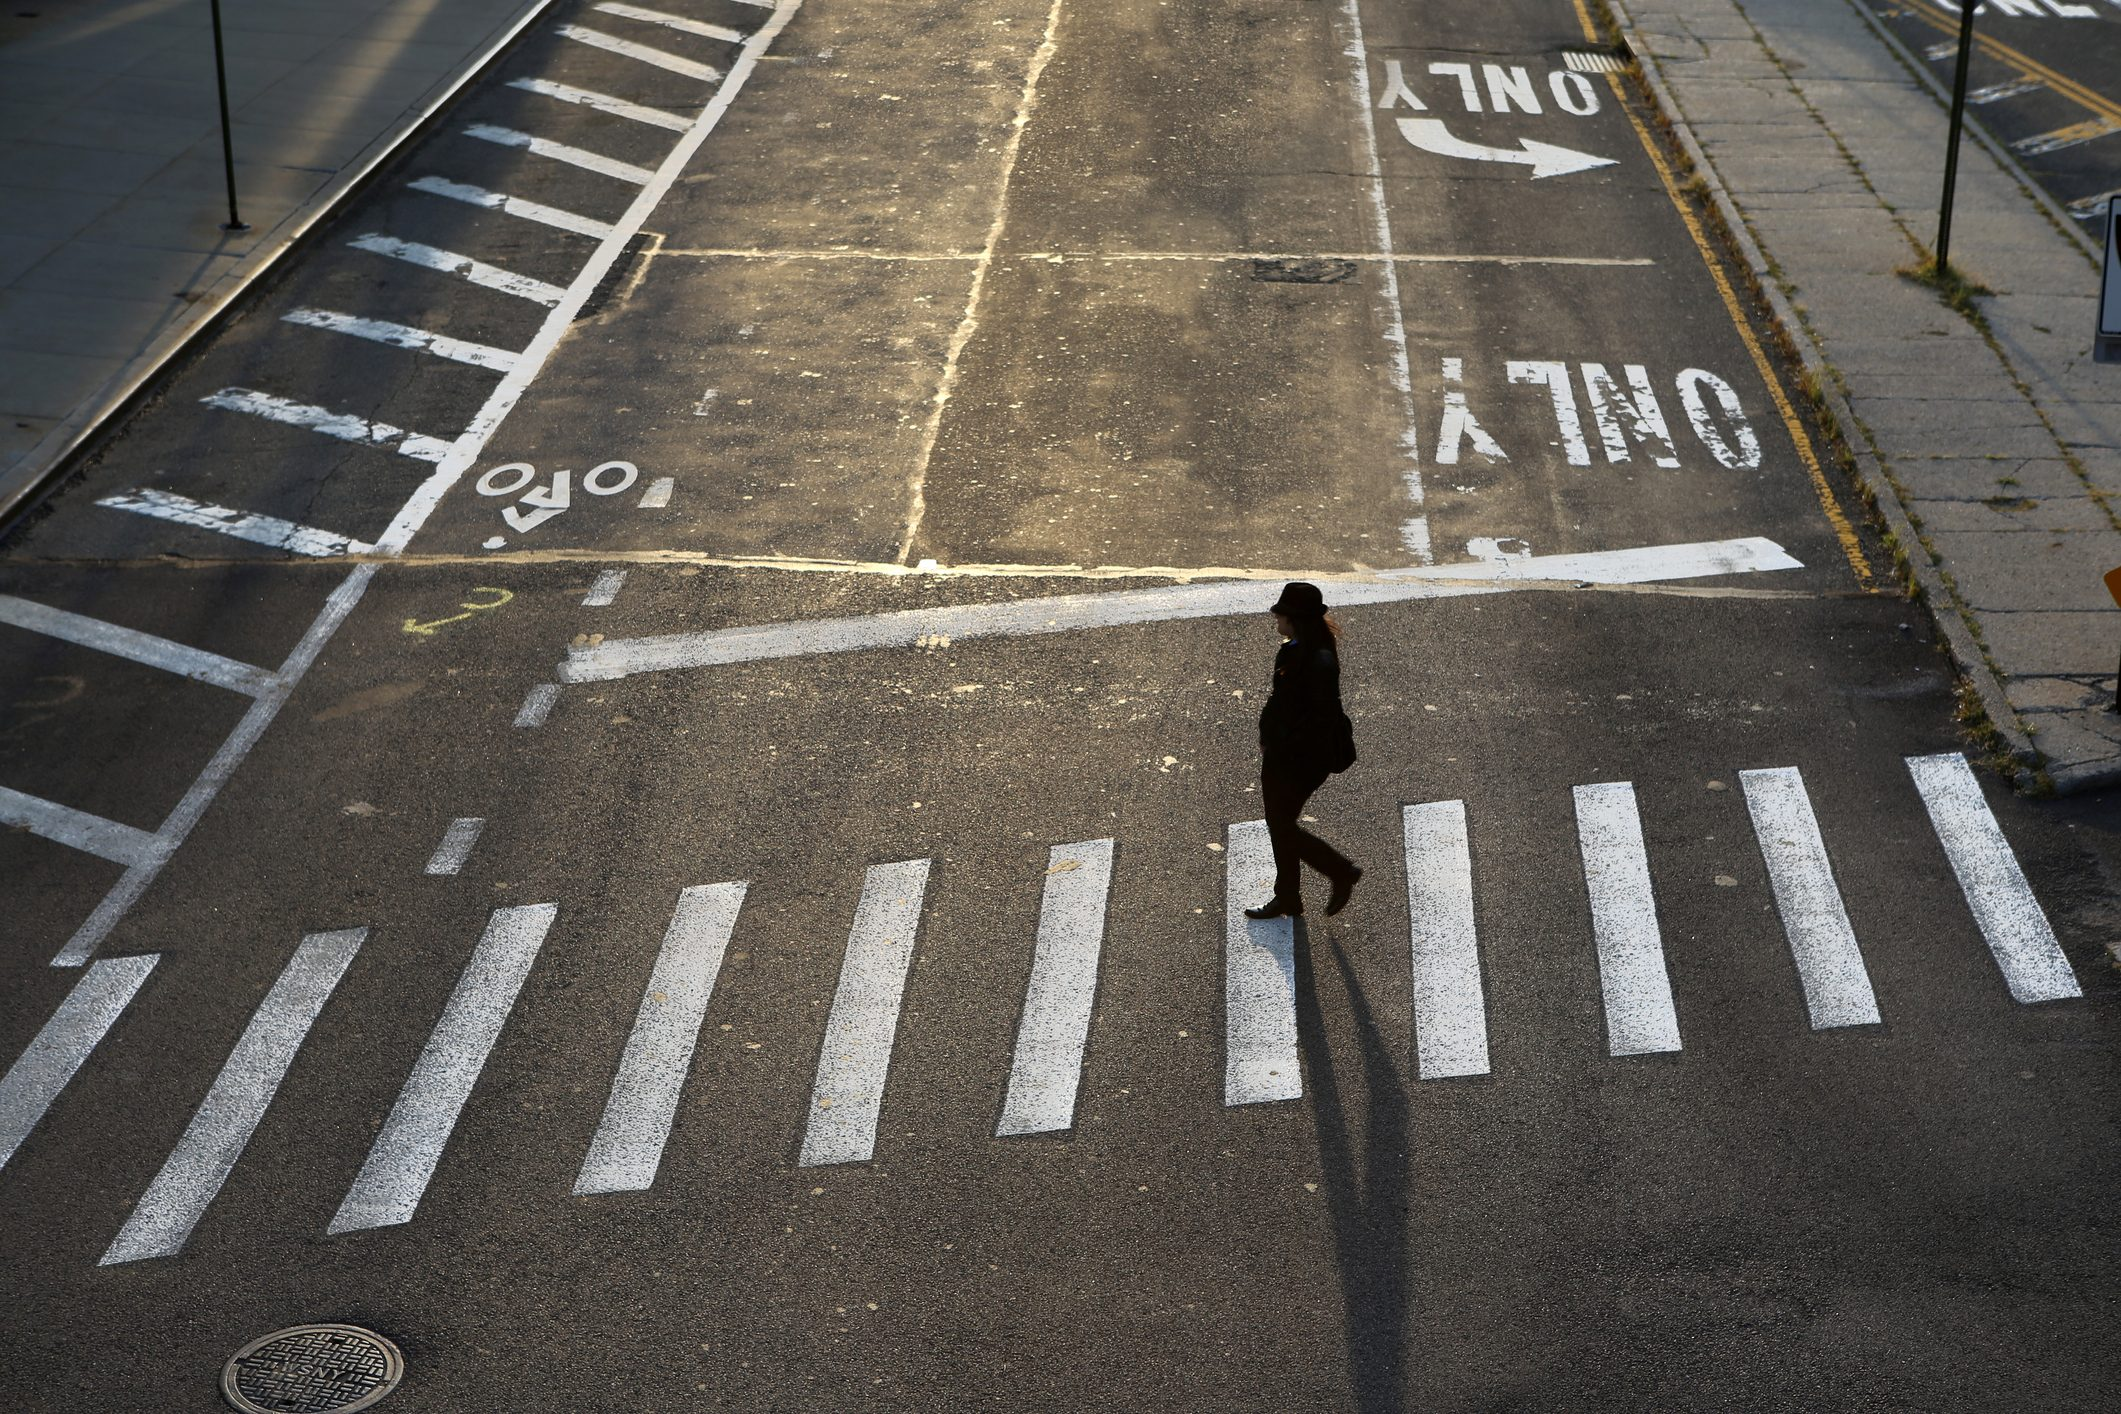 A woman crossing a street in Dumbo, Brooklyn, New York City, USA